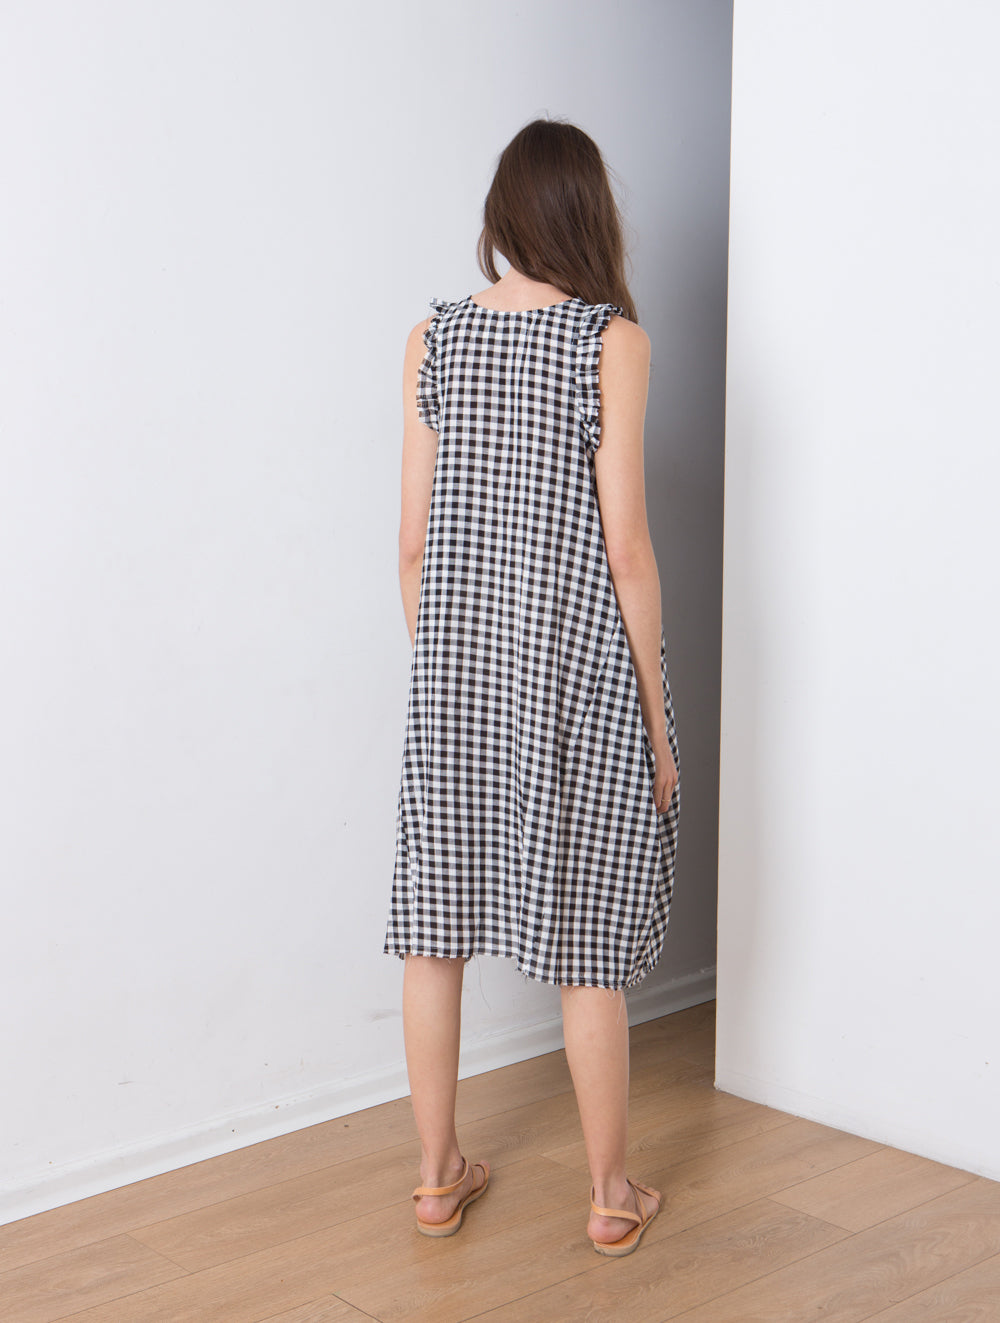 Picnic dress , plaid summer dress , sophisticated summer dress . midi length cotton dress . Black & white .